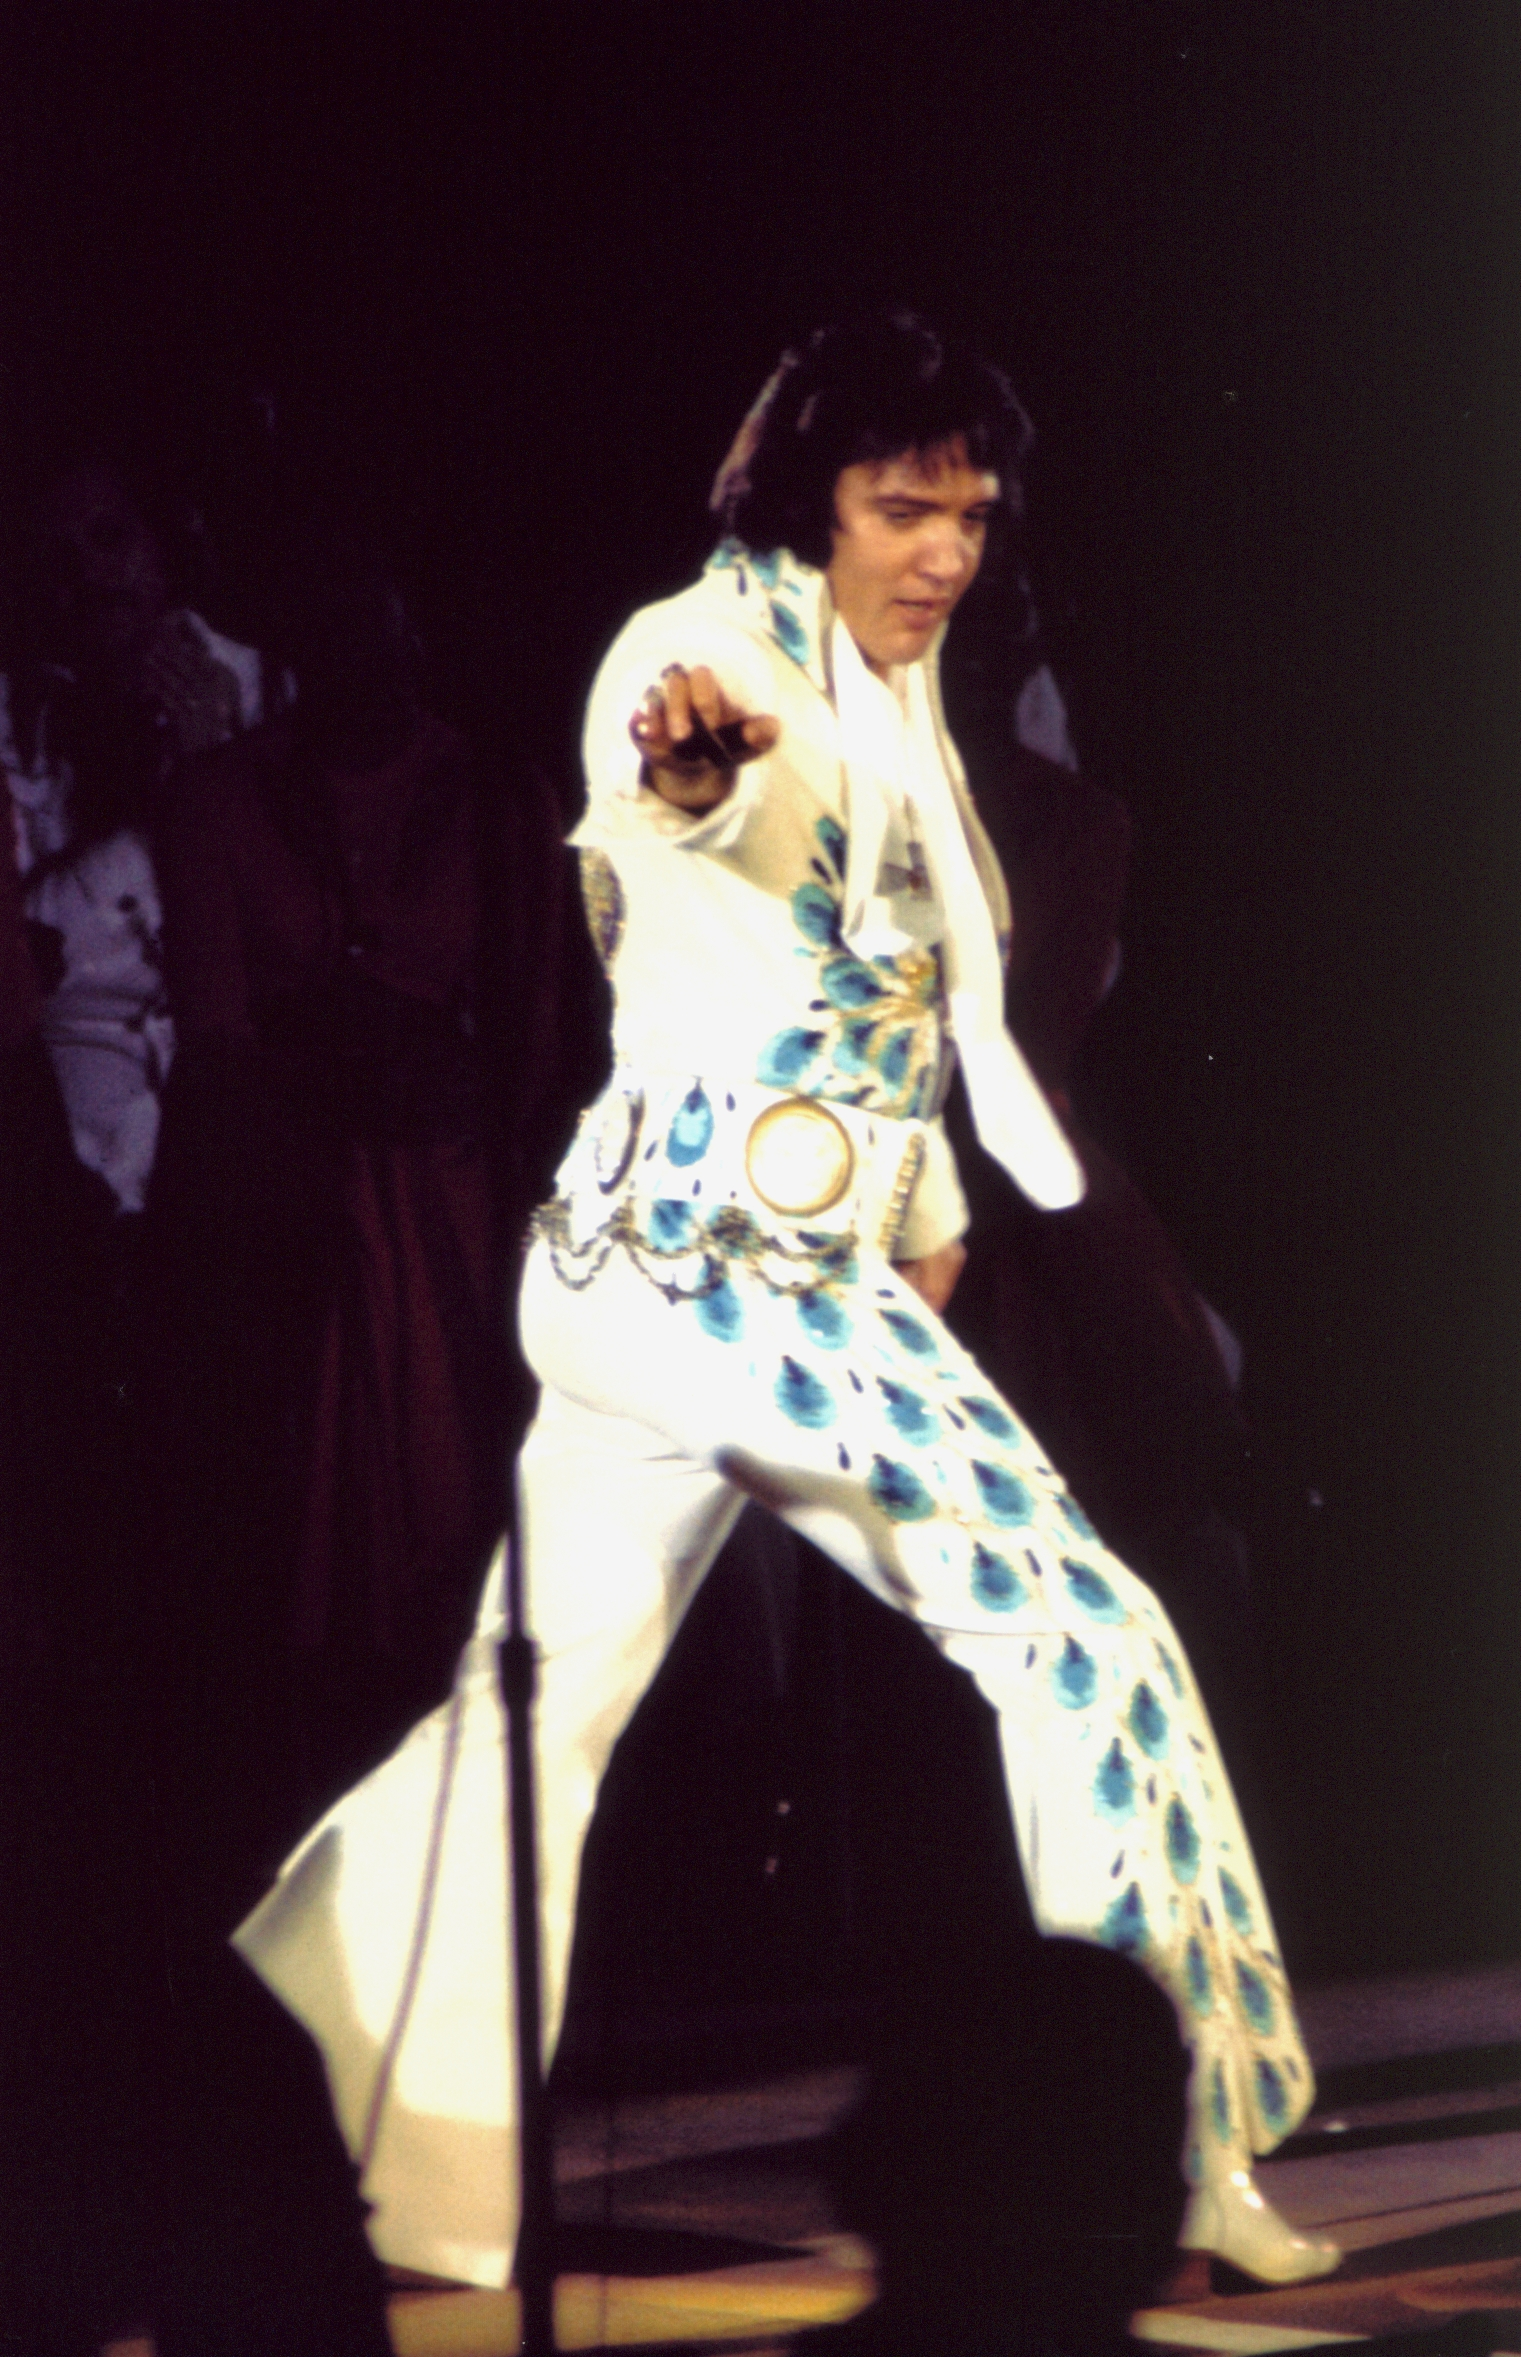 https://i1.wp.com/www.elvisconcerts.com/pictures/s74062604.jpg